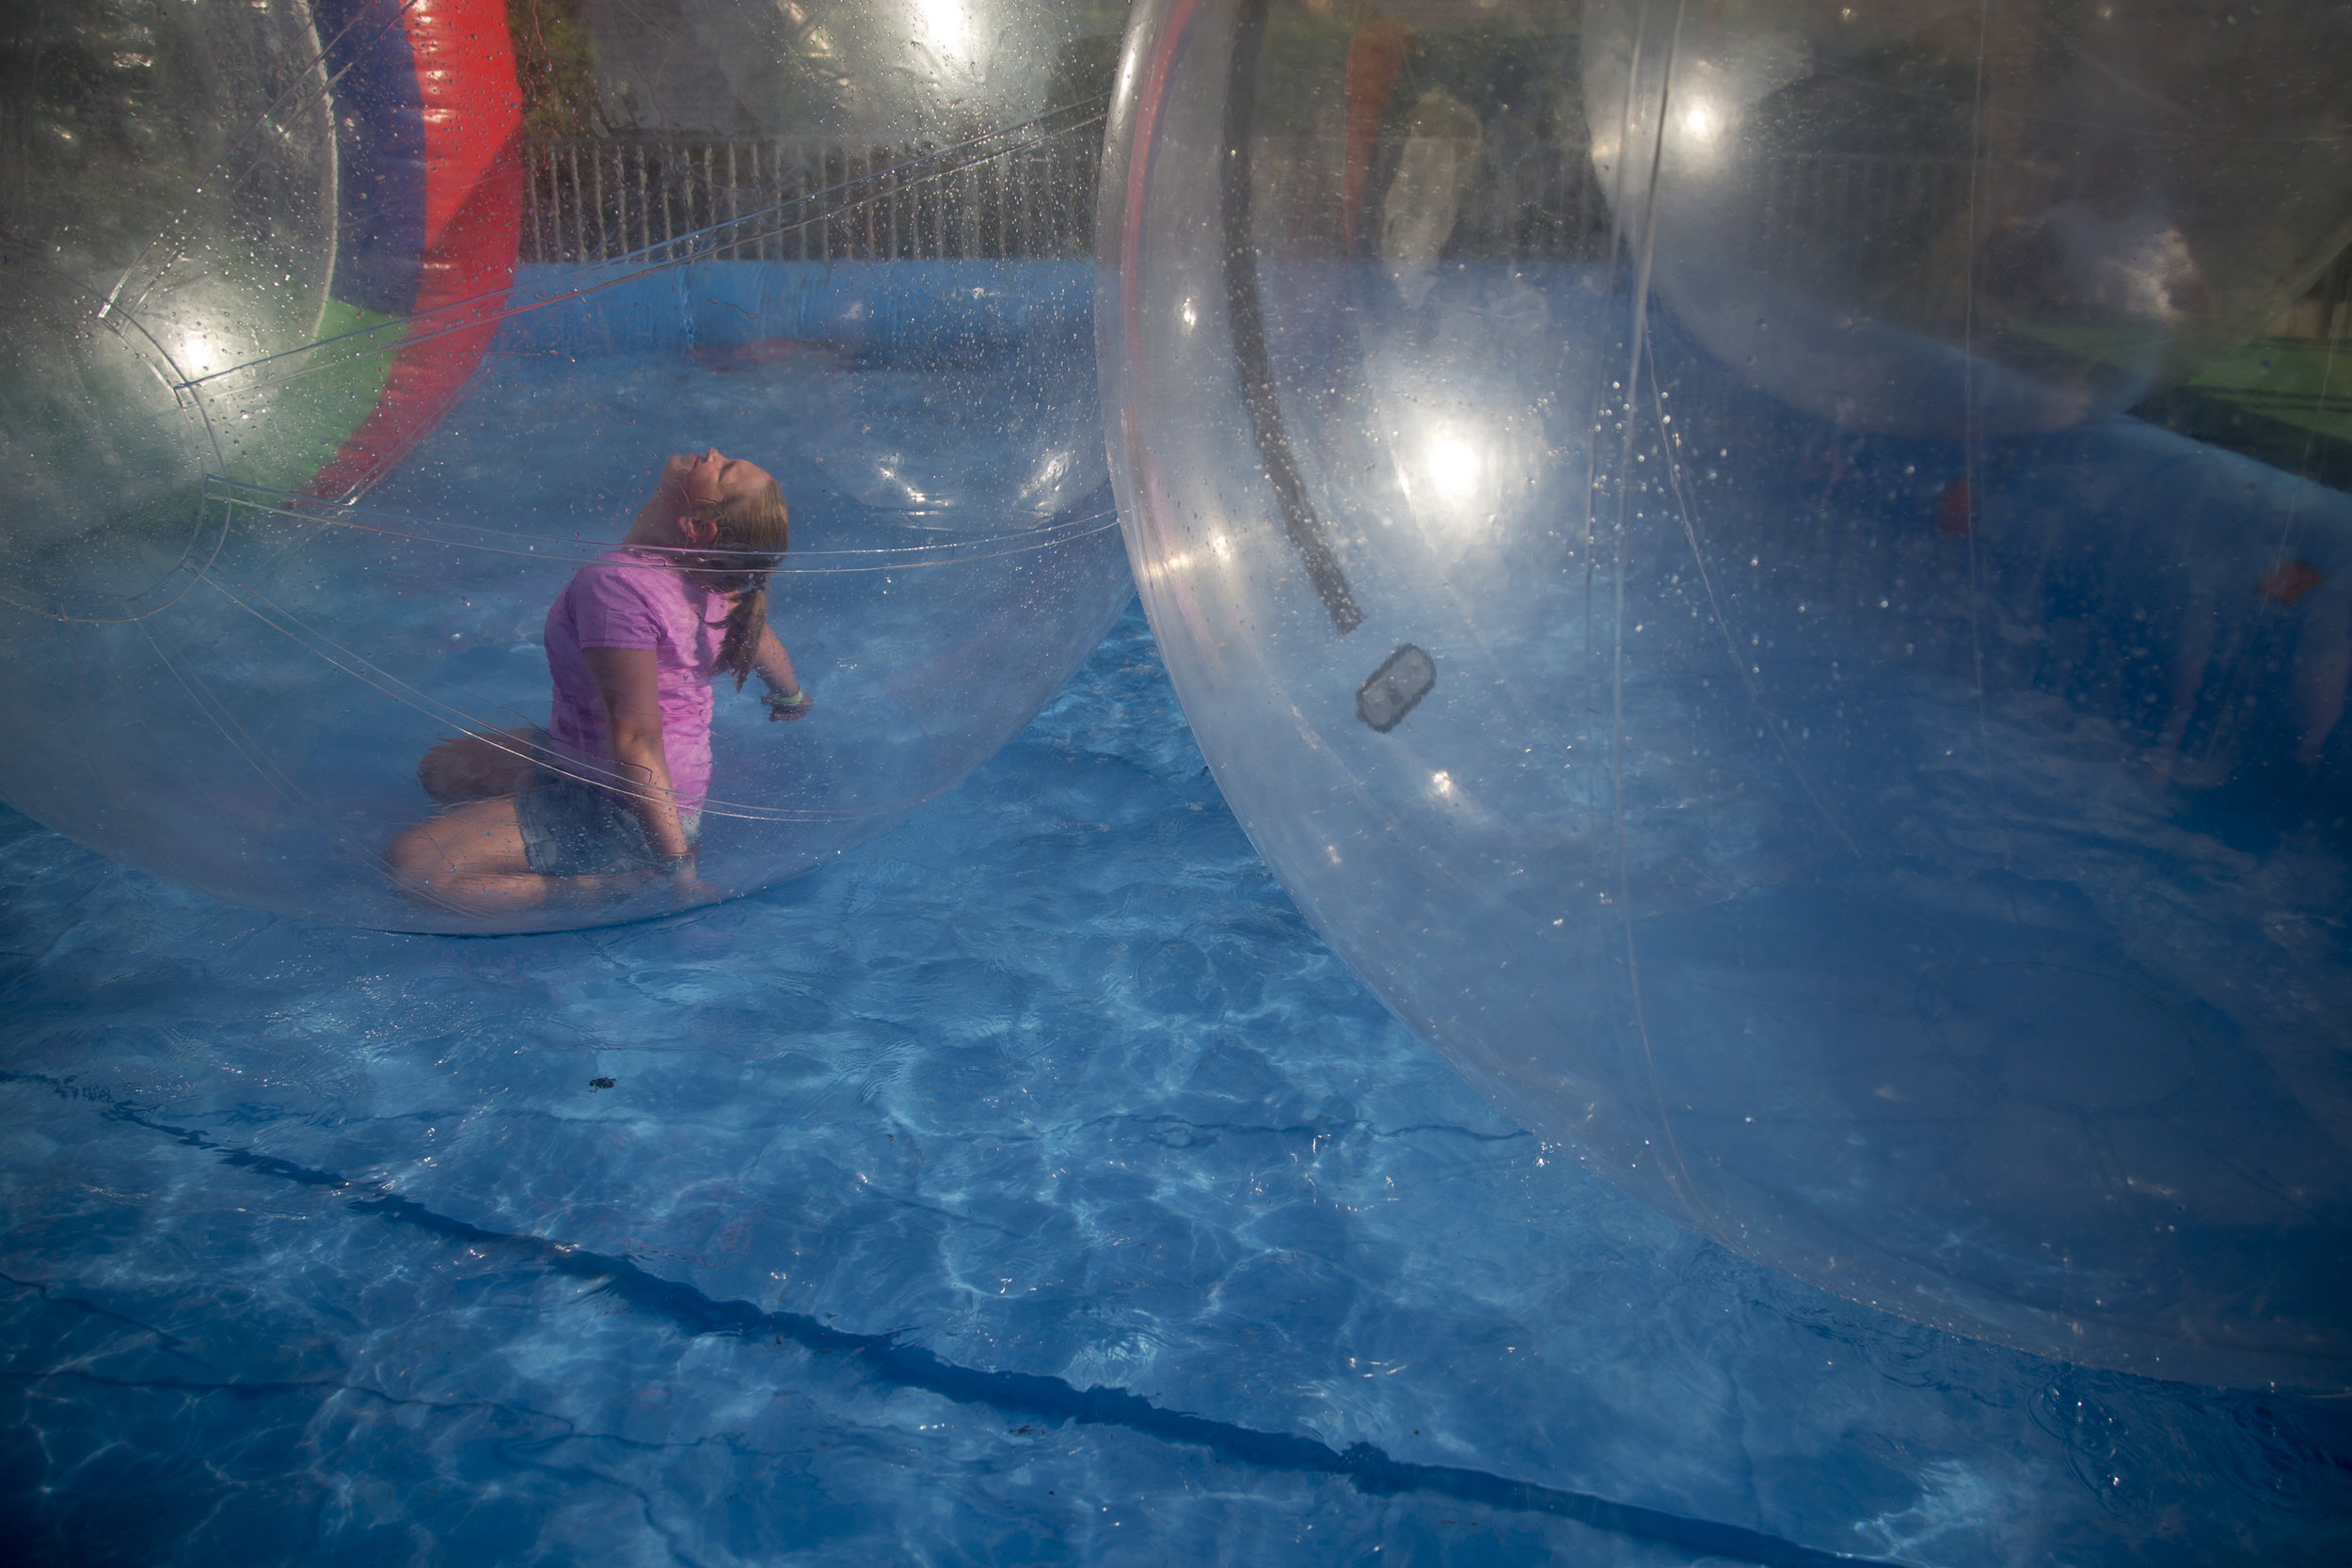 Haliey Eckert of Jasper, 9, floated around a temporary pool in a large blow up ball on Saturday evening at Strassenfest in Jasper. This ride gives kids the chance to feel like they're walking on water or floating on the surface while staying dry.